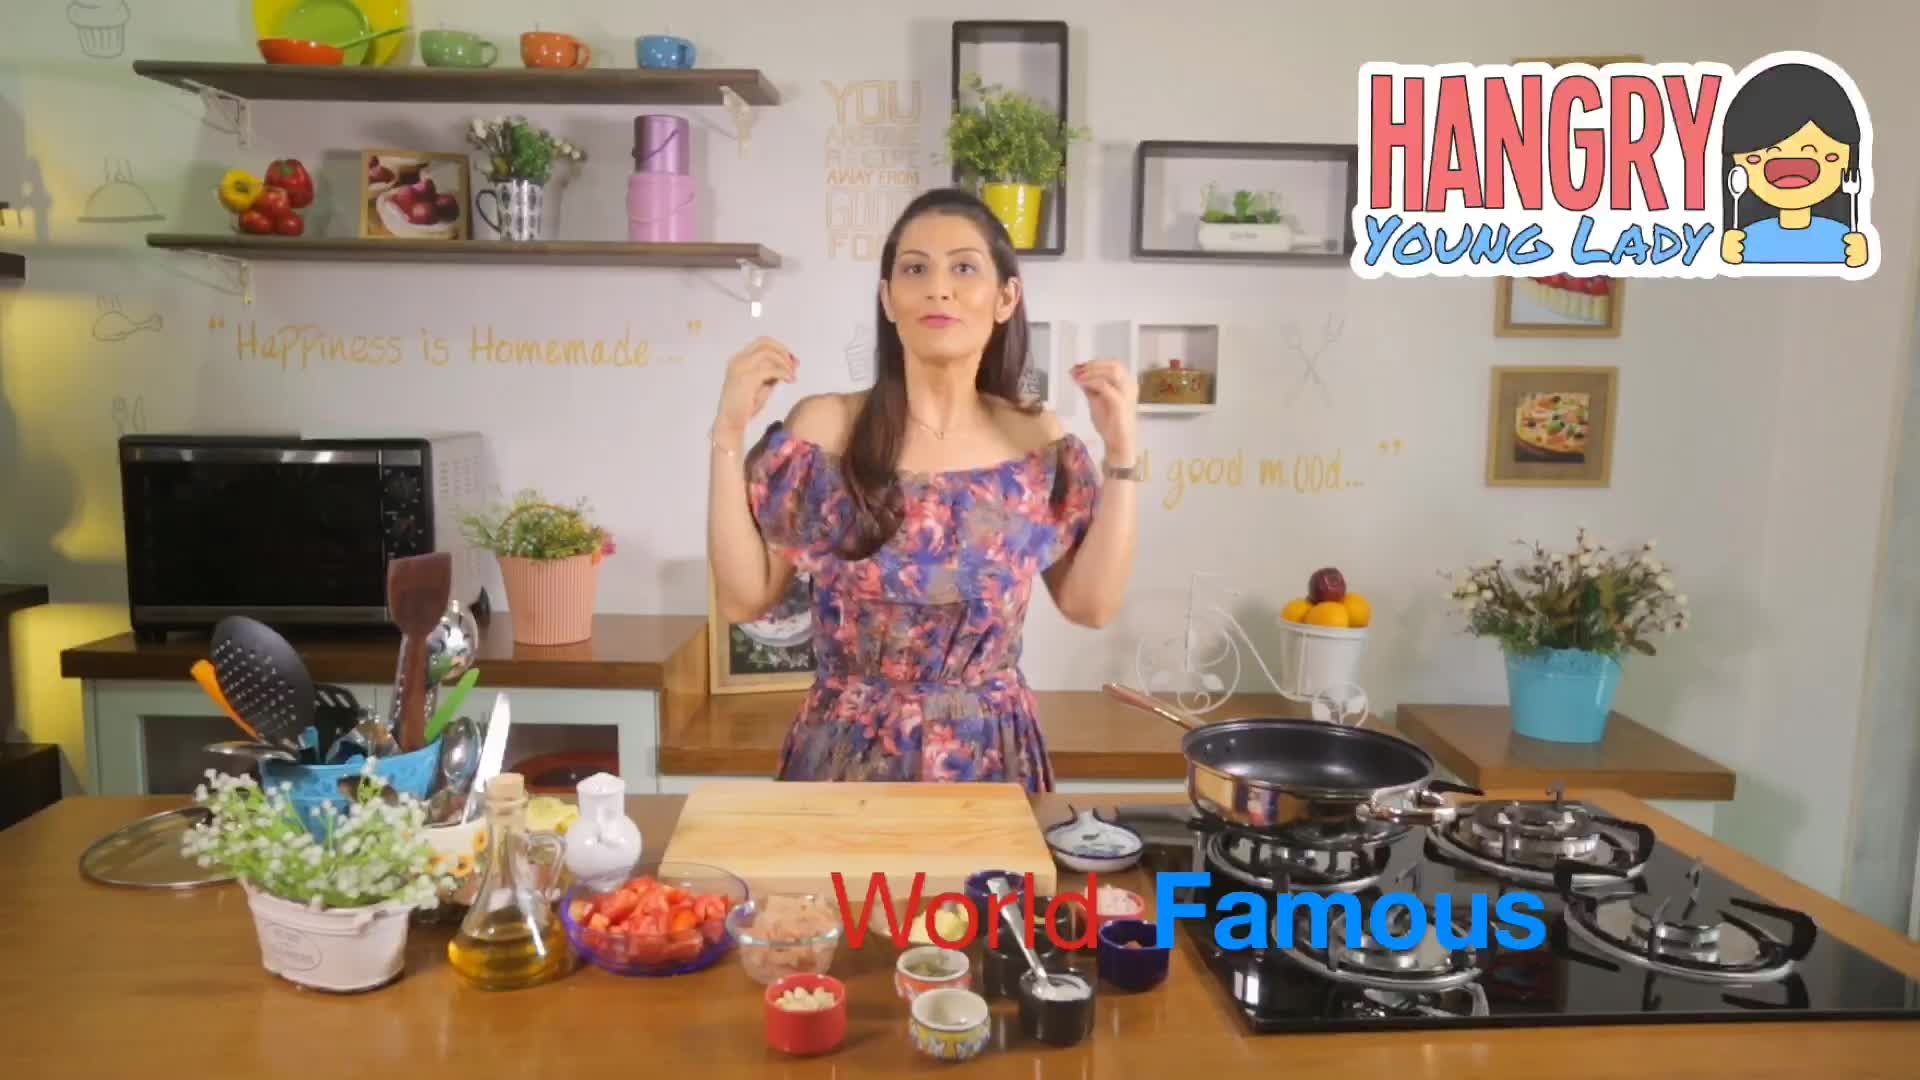 Can you guess which dish is coming up next? Keep the volume Loud, will you! 😀💋💋💋 Love M.                        #chefmeghna #guess #dish #recipevideo #recipe #comingup #comingsoon #popular #demand  #hangryyounglady